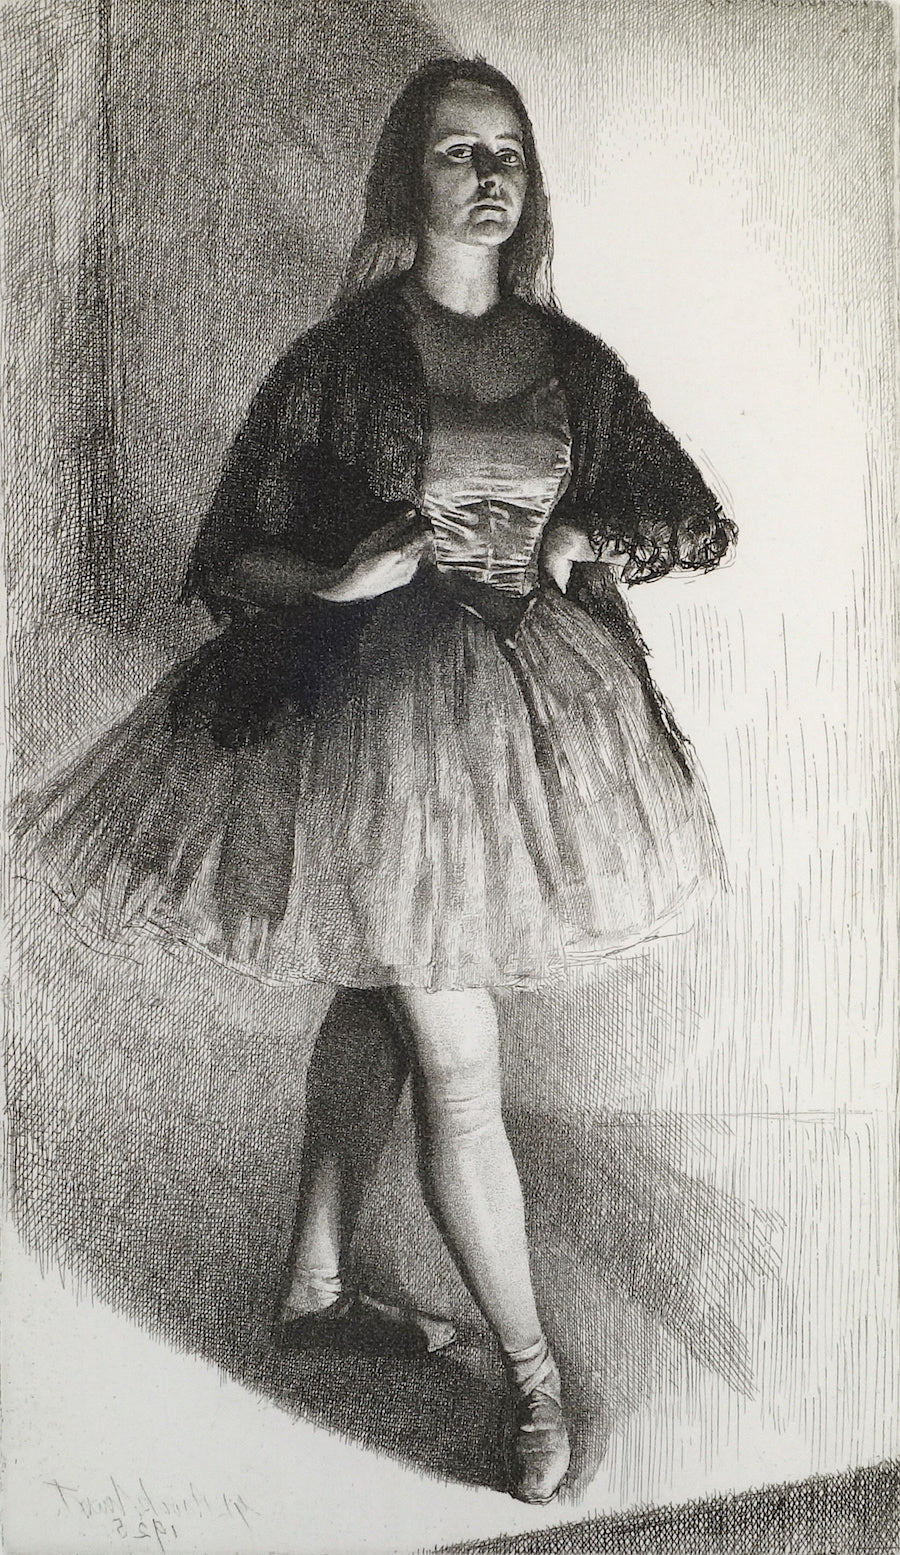 Black and white image of a ballerina on stage